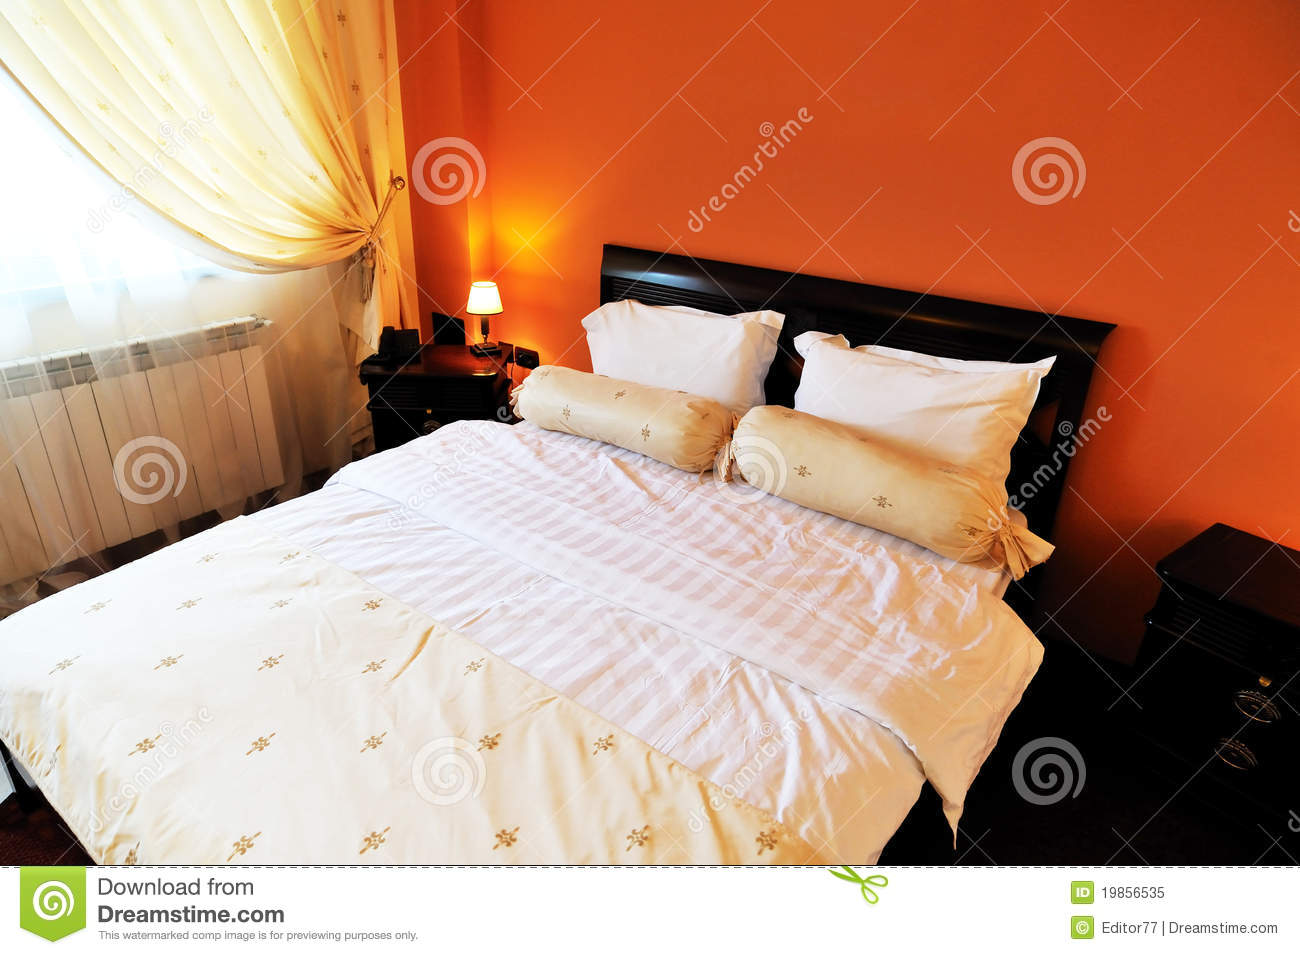 Matrimonial Bed Inside The Hotel Room Royalty Free Stock Photo.